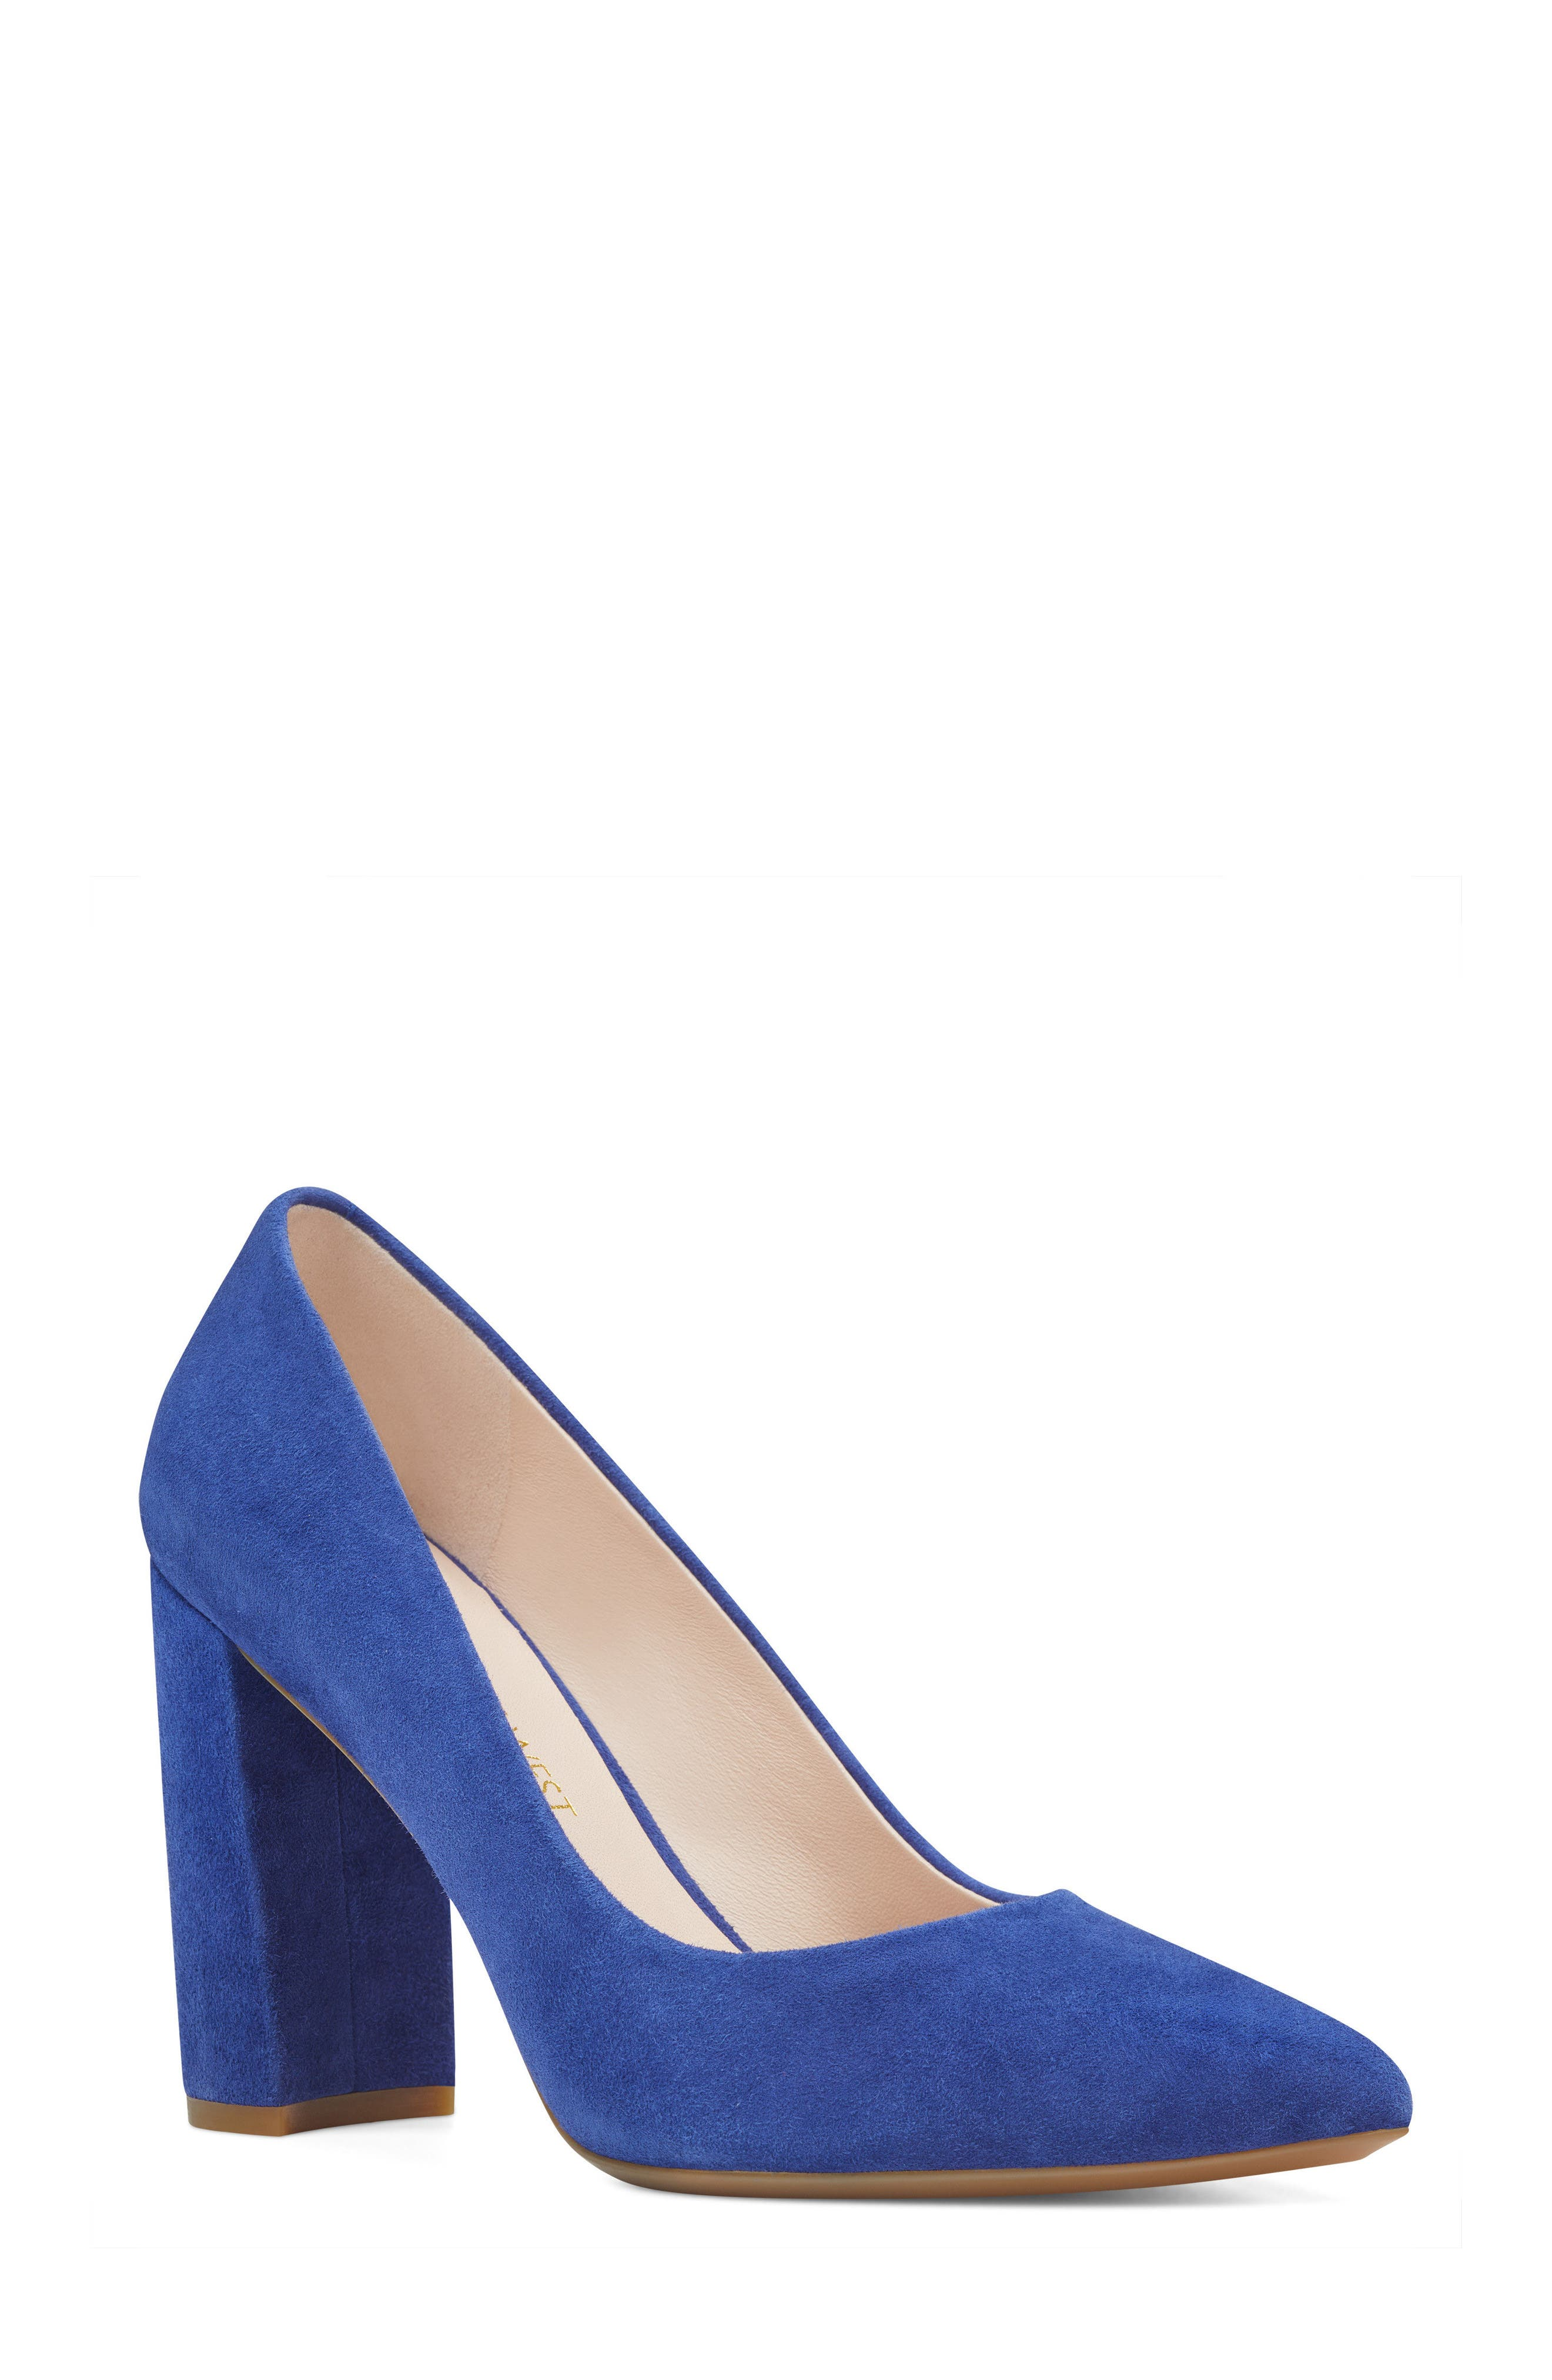 Astoria Pump,                             Main thumbnail 1, color,                             DARK BLUE SUEDE